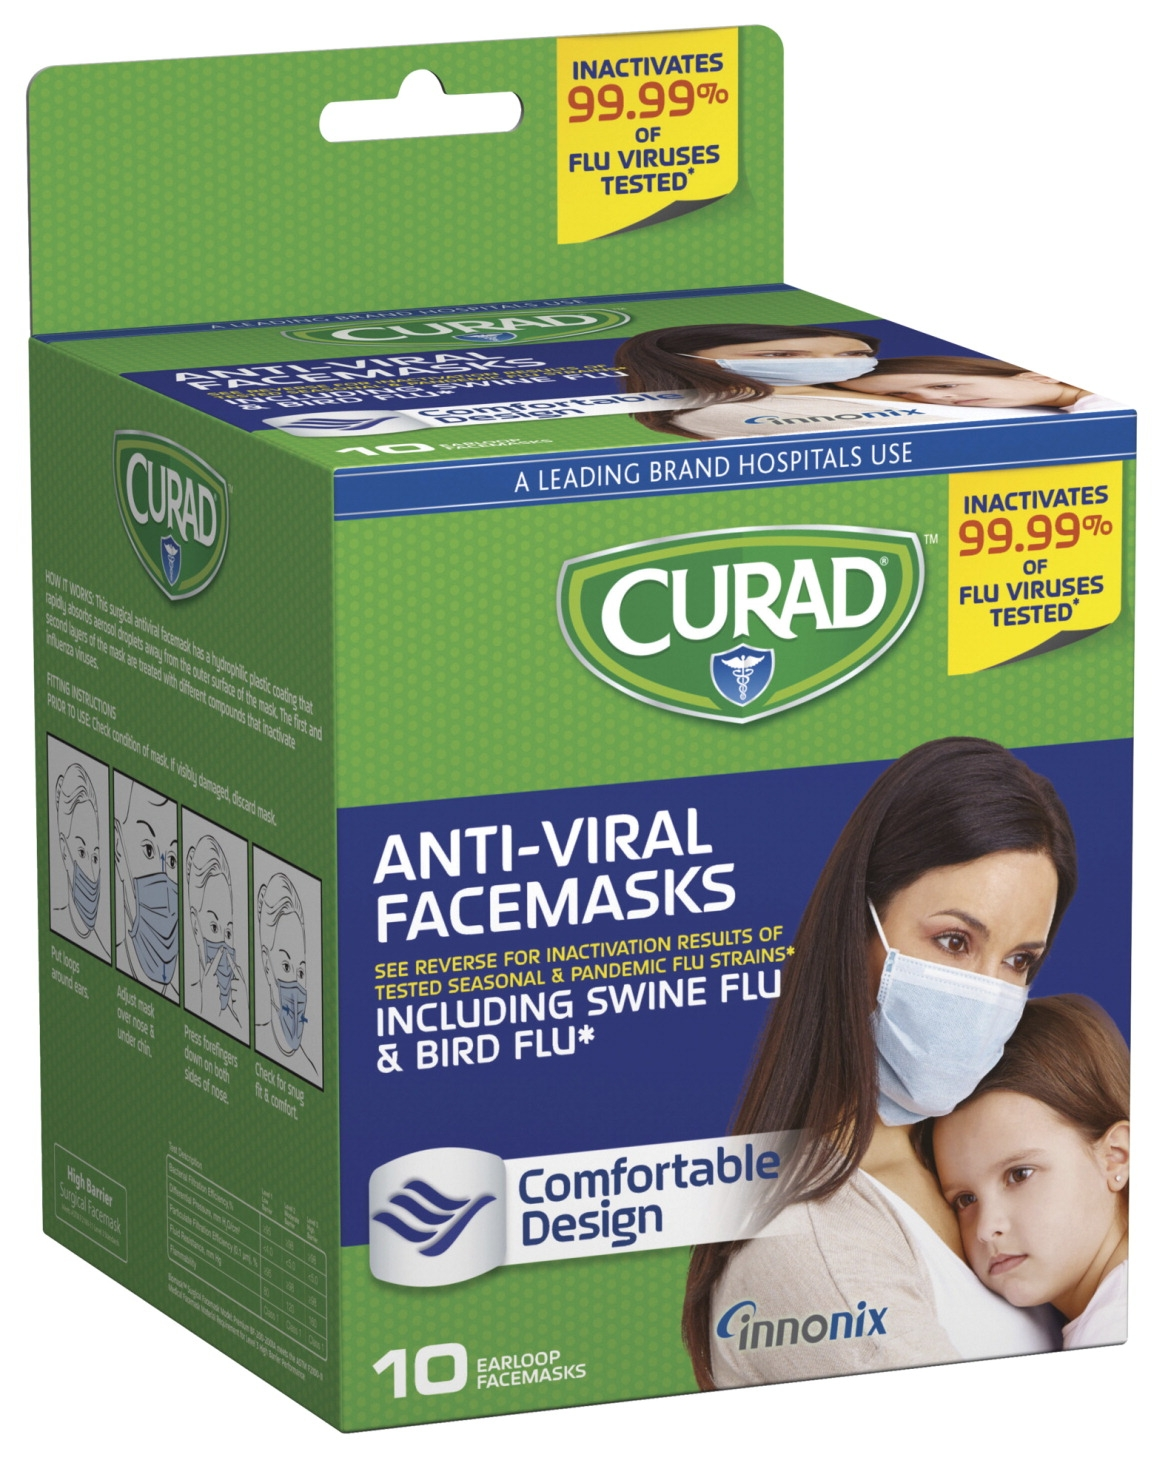 Medline Curad Anti-viral Medical Face Mask; Plastic; White/green; 0.9999; Virus Filter; Pack Of 10 - 1449267 - Facilities Management Facility Supplies First Aid Health Supplies Diagnostic Bandages And Masks 1449267